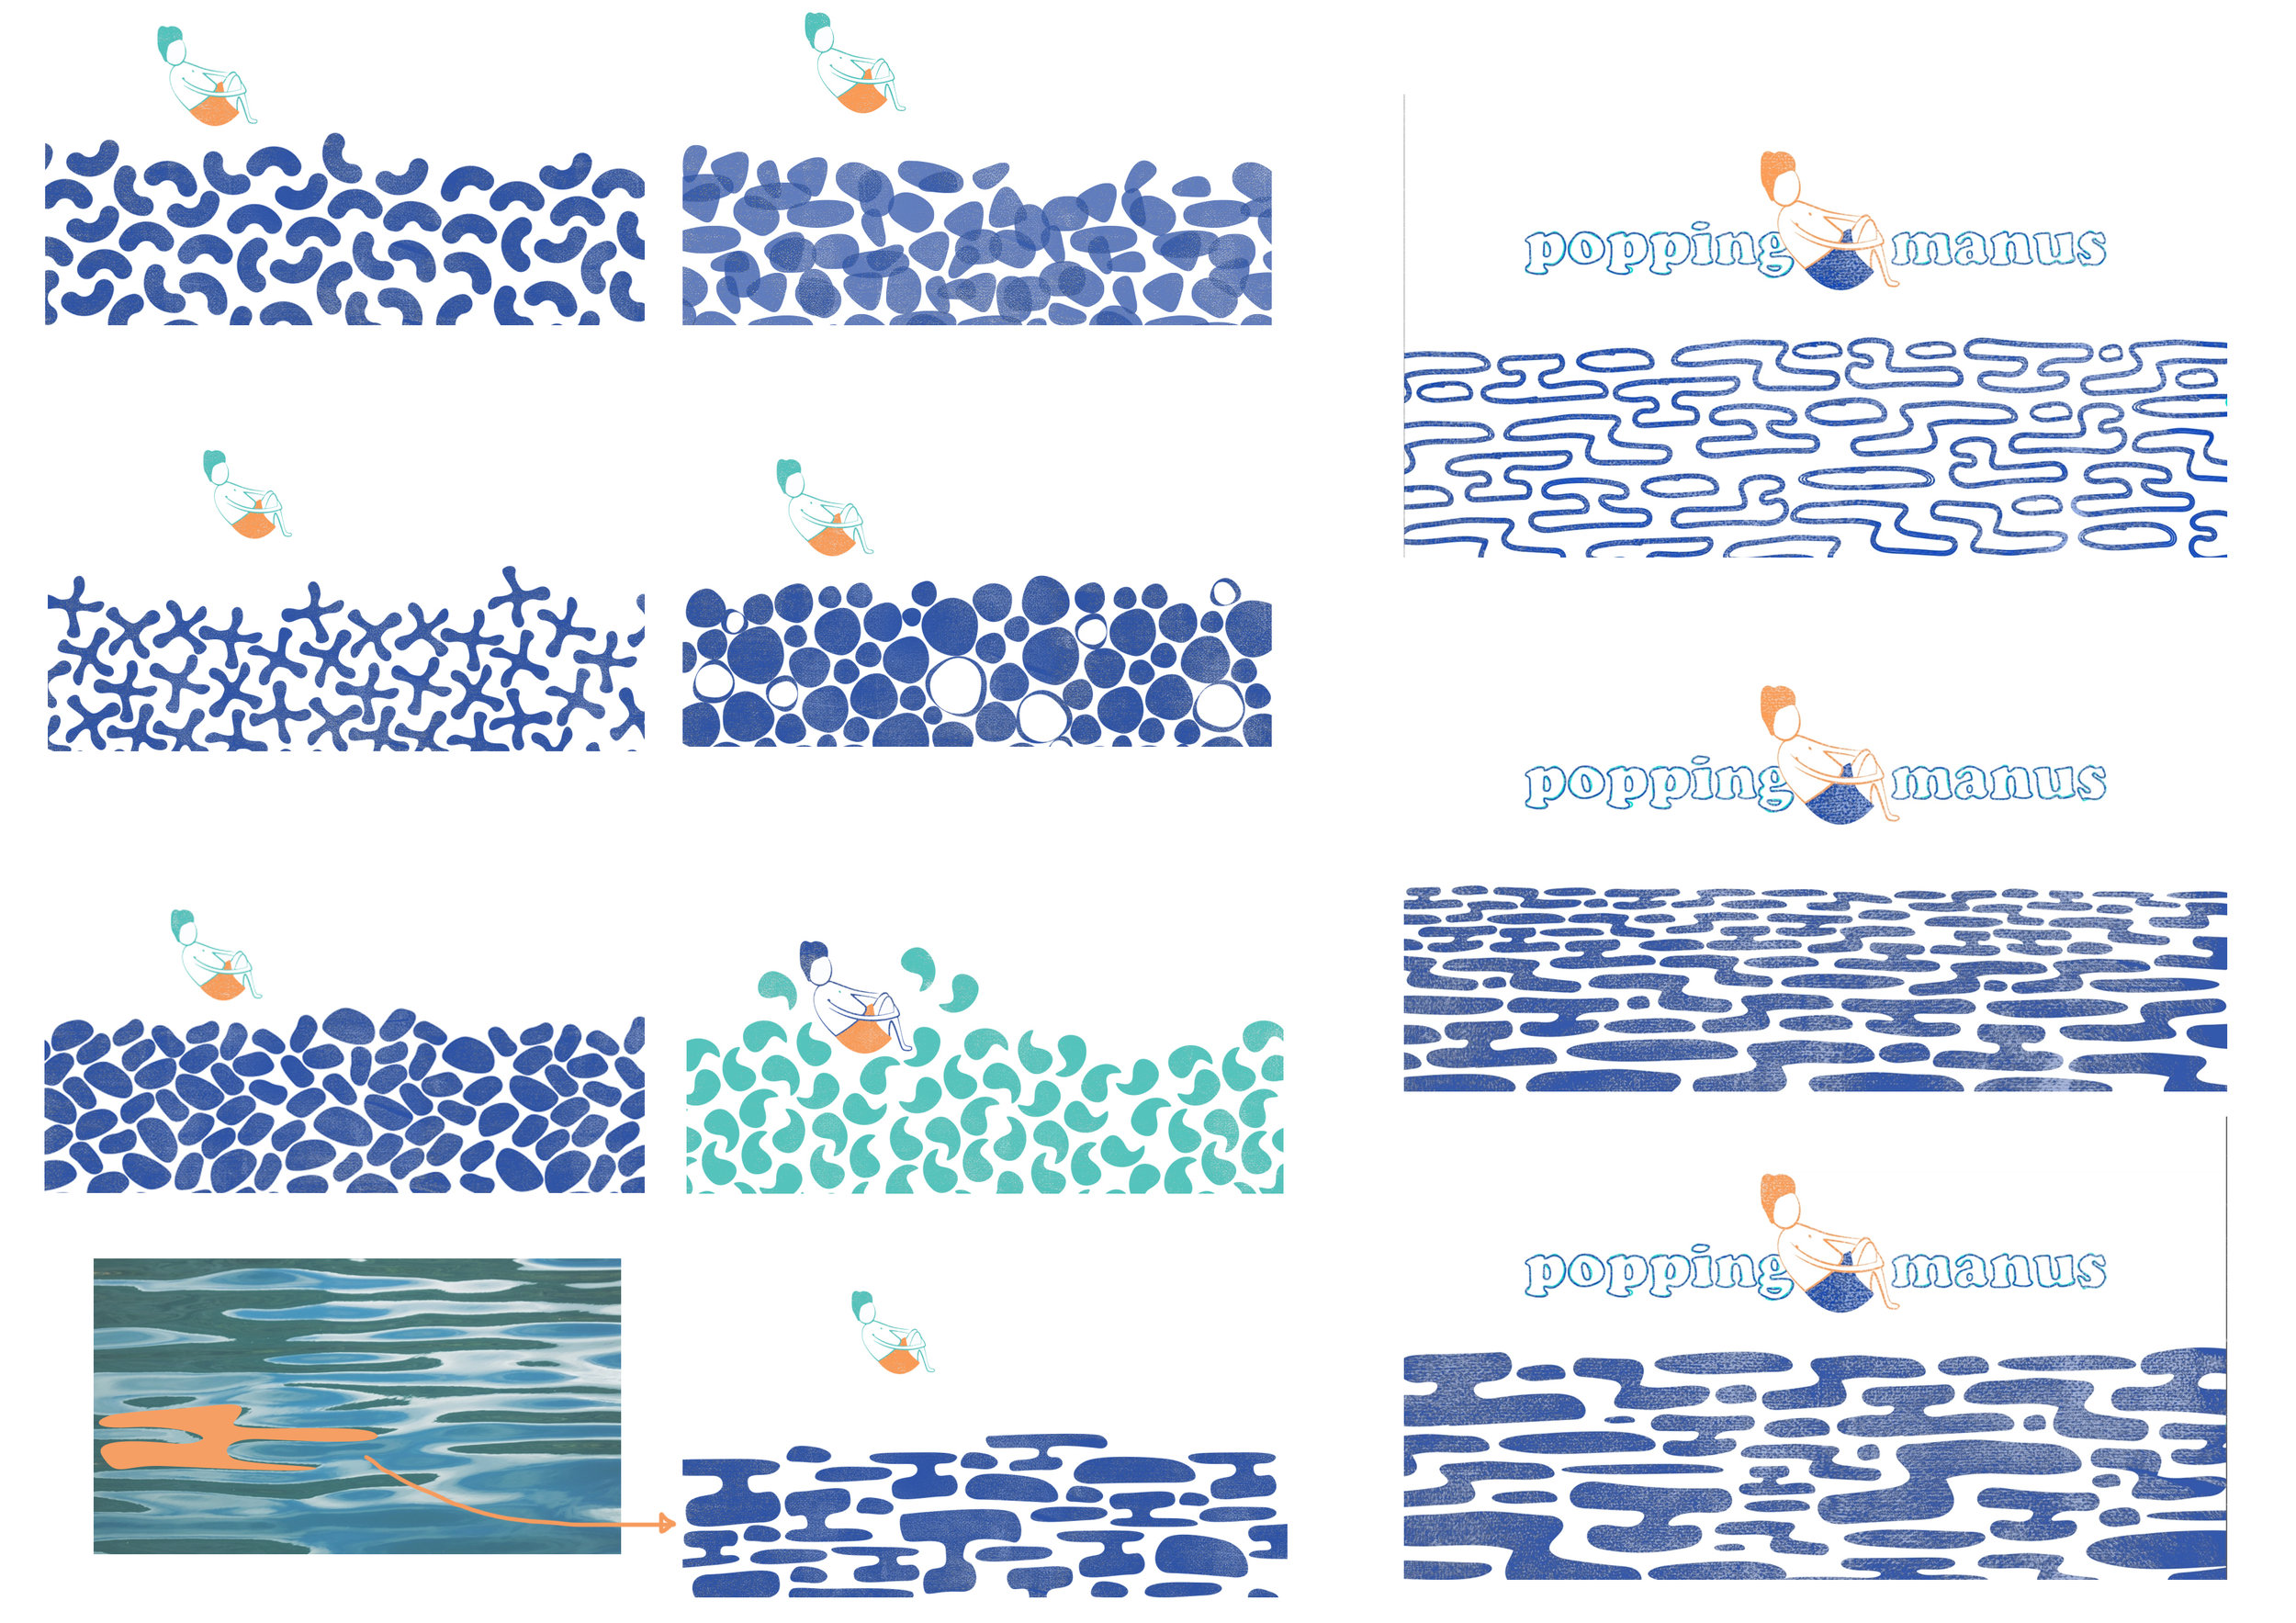 An issue we ran into was that our current water illustration resembled pills. This prompted an exploration of how else we could use simple shapes to represent water, we settled on an abstraction of the water's surface.